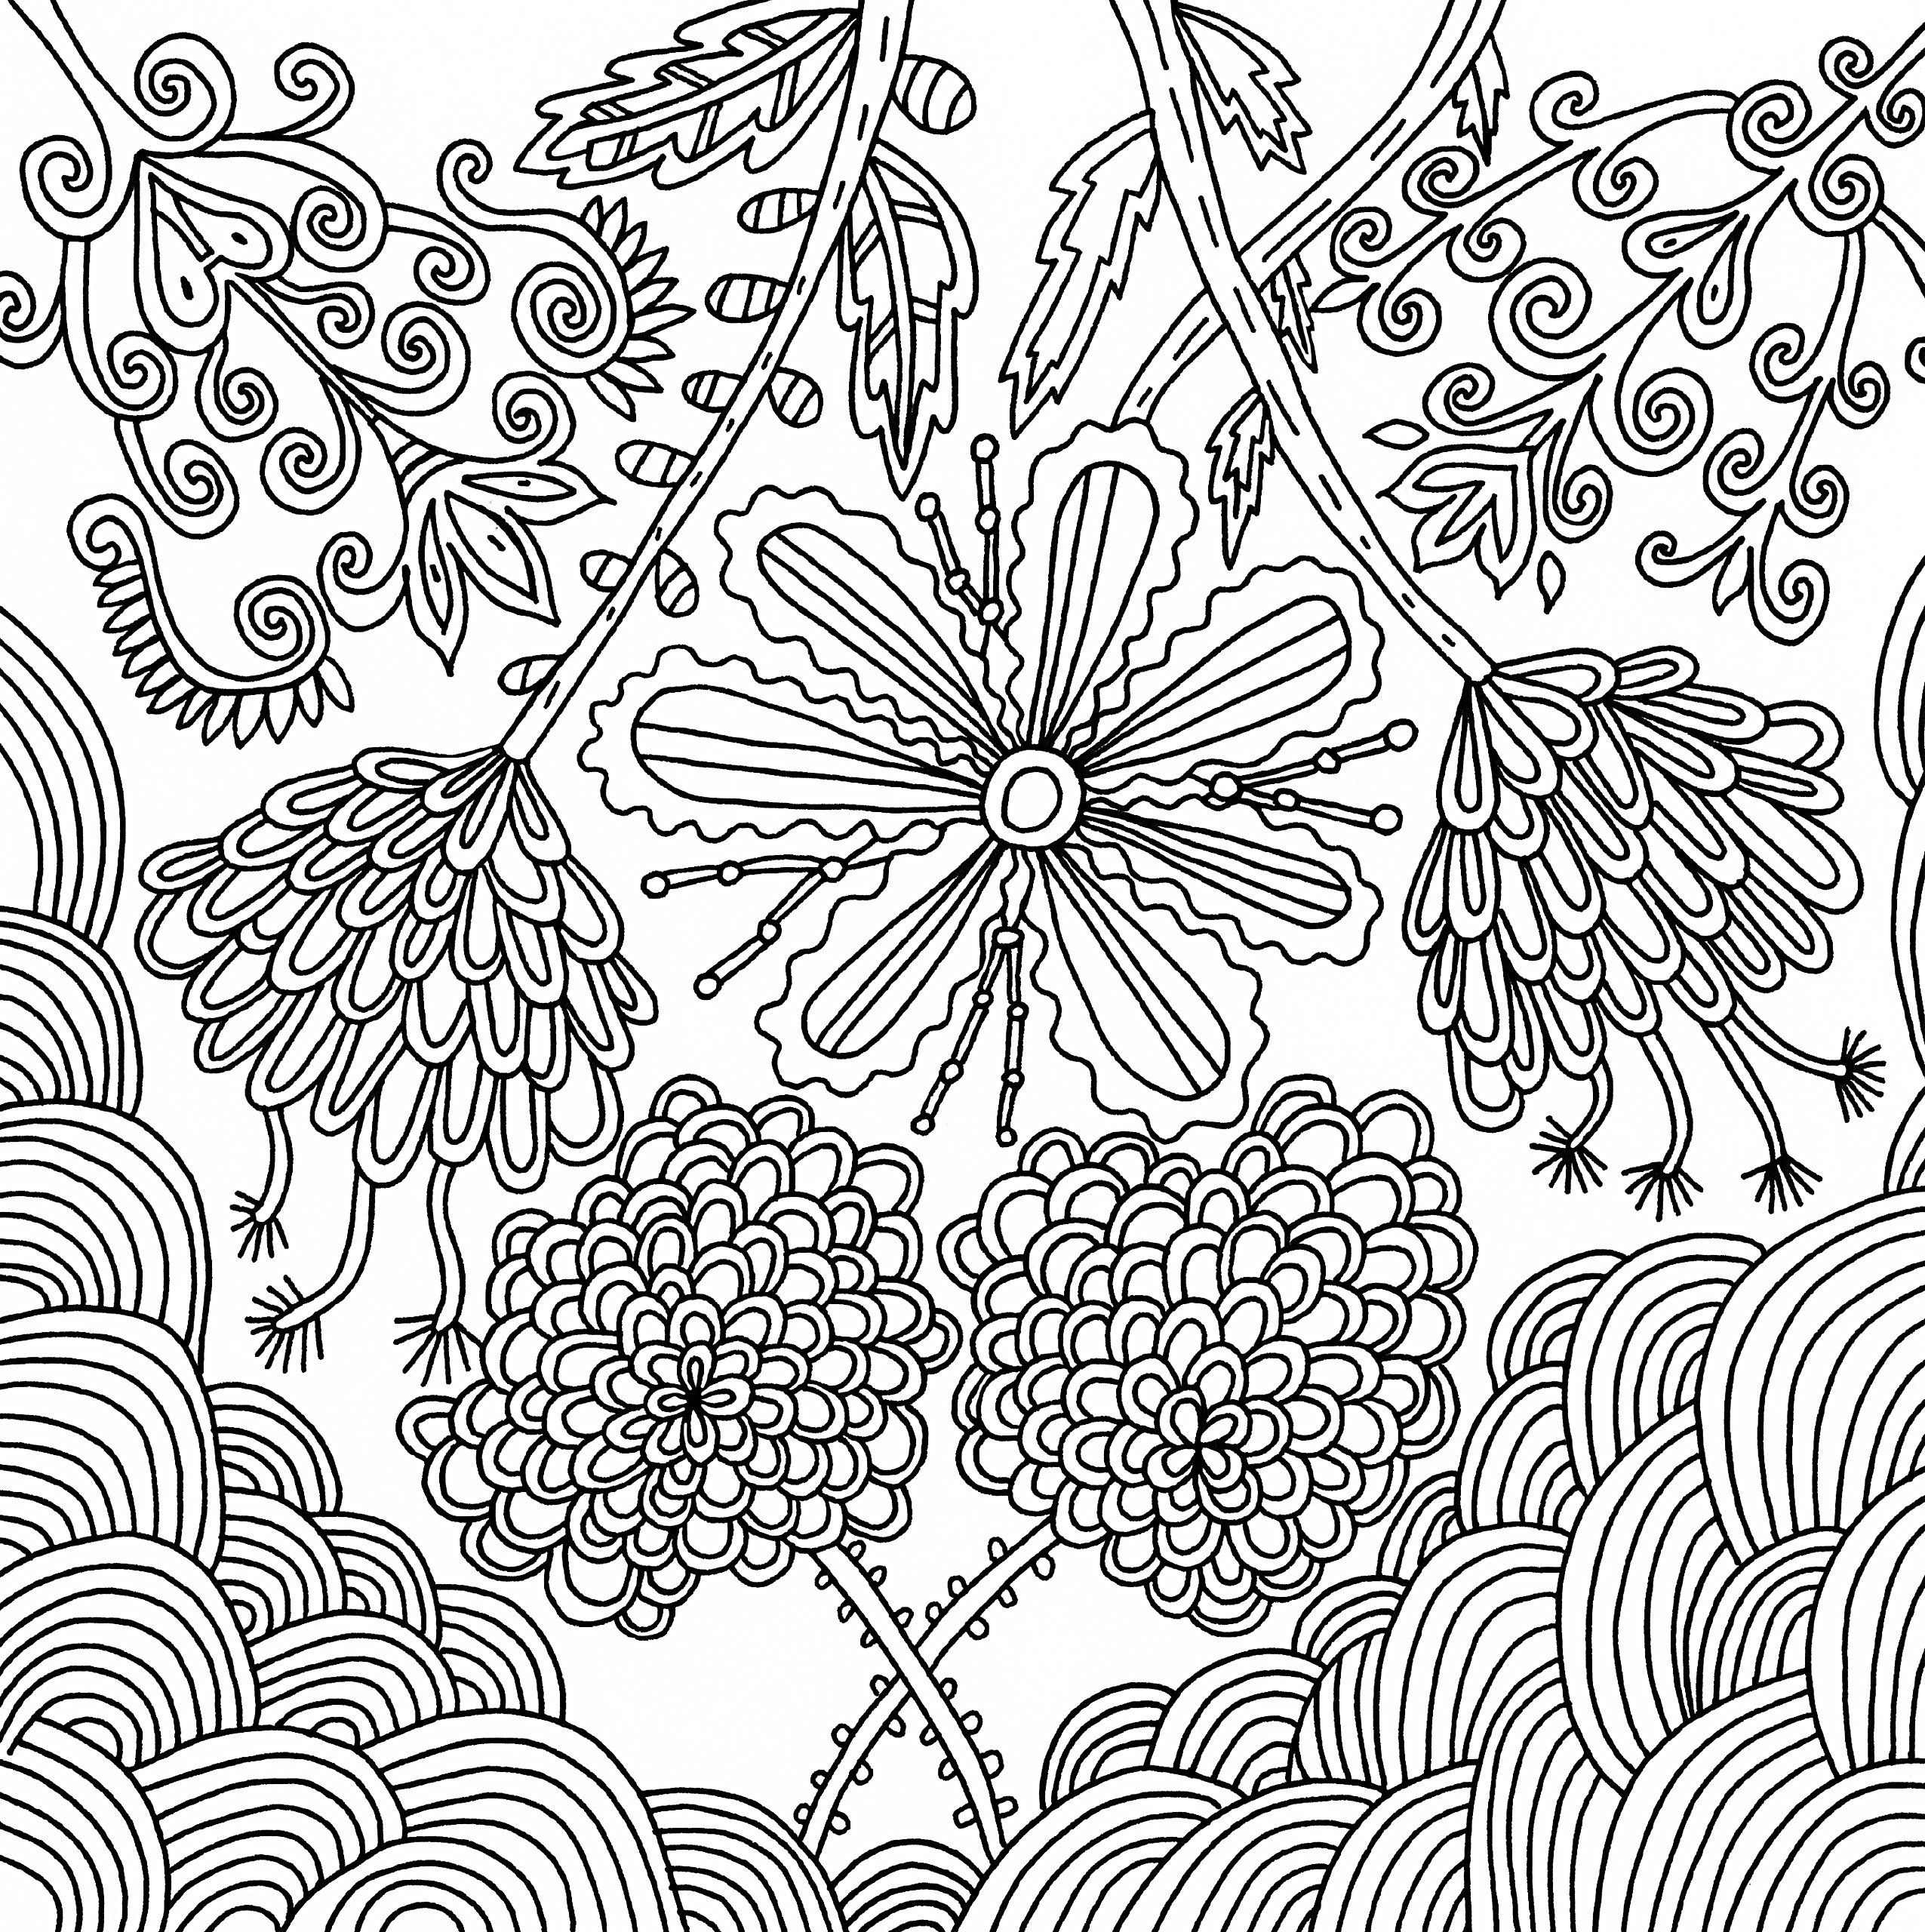 serenity adult coloring book 31 stressrelieving designs